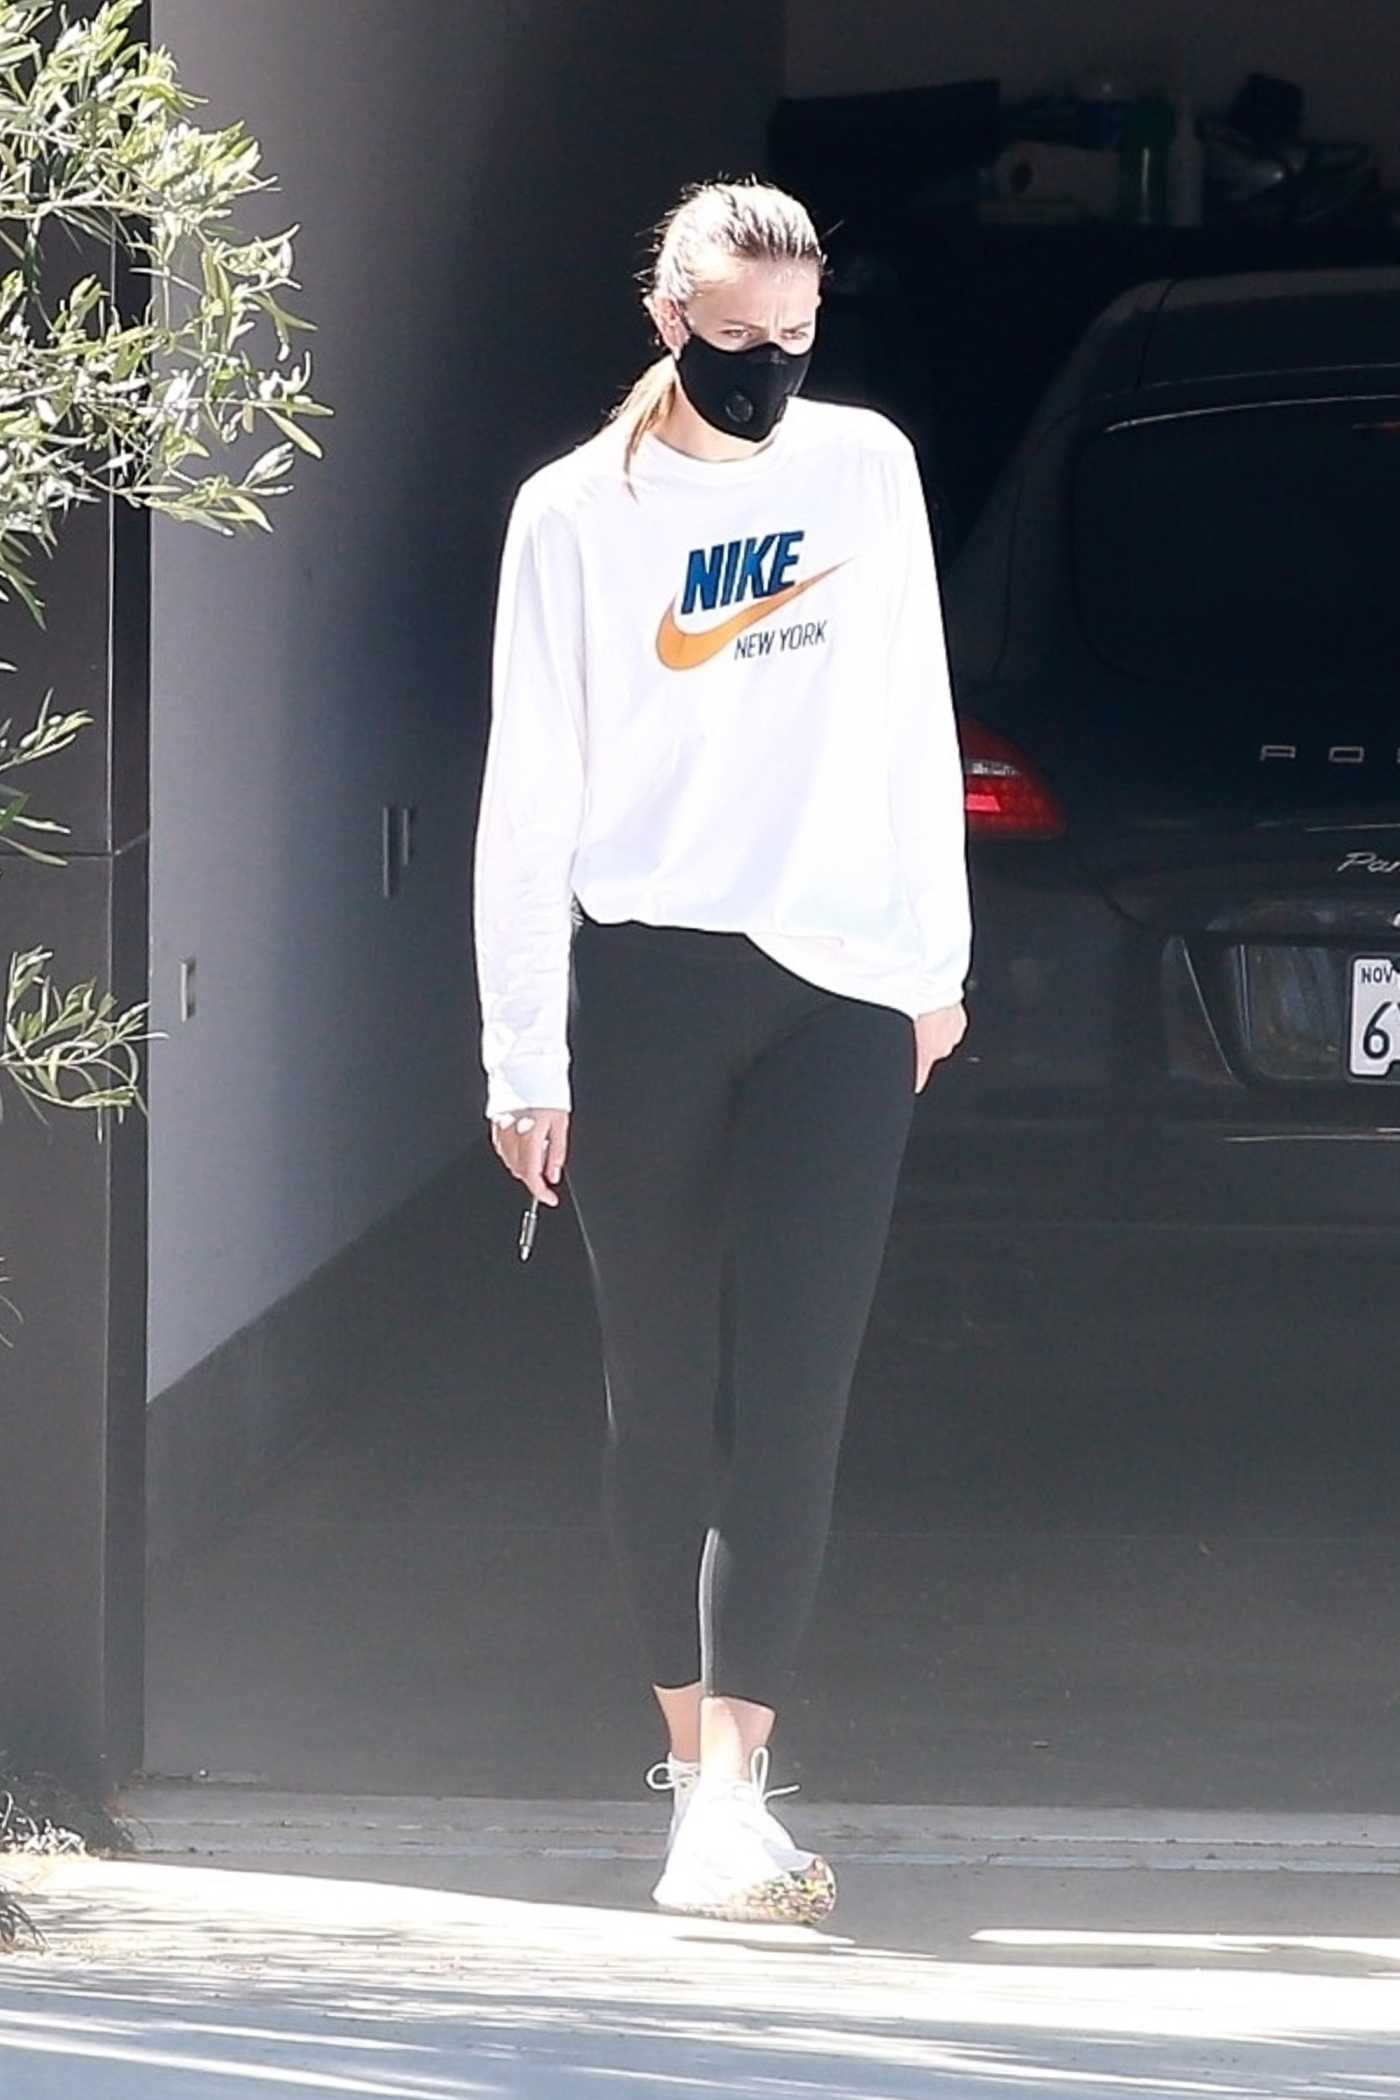 Maria Sharapova in a White Nike Sweatshirt Was Seen Out  in Manhattan Beach 04/21/2020